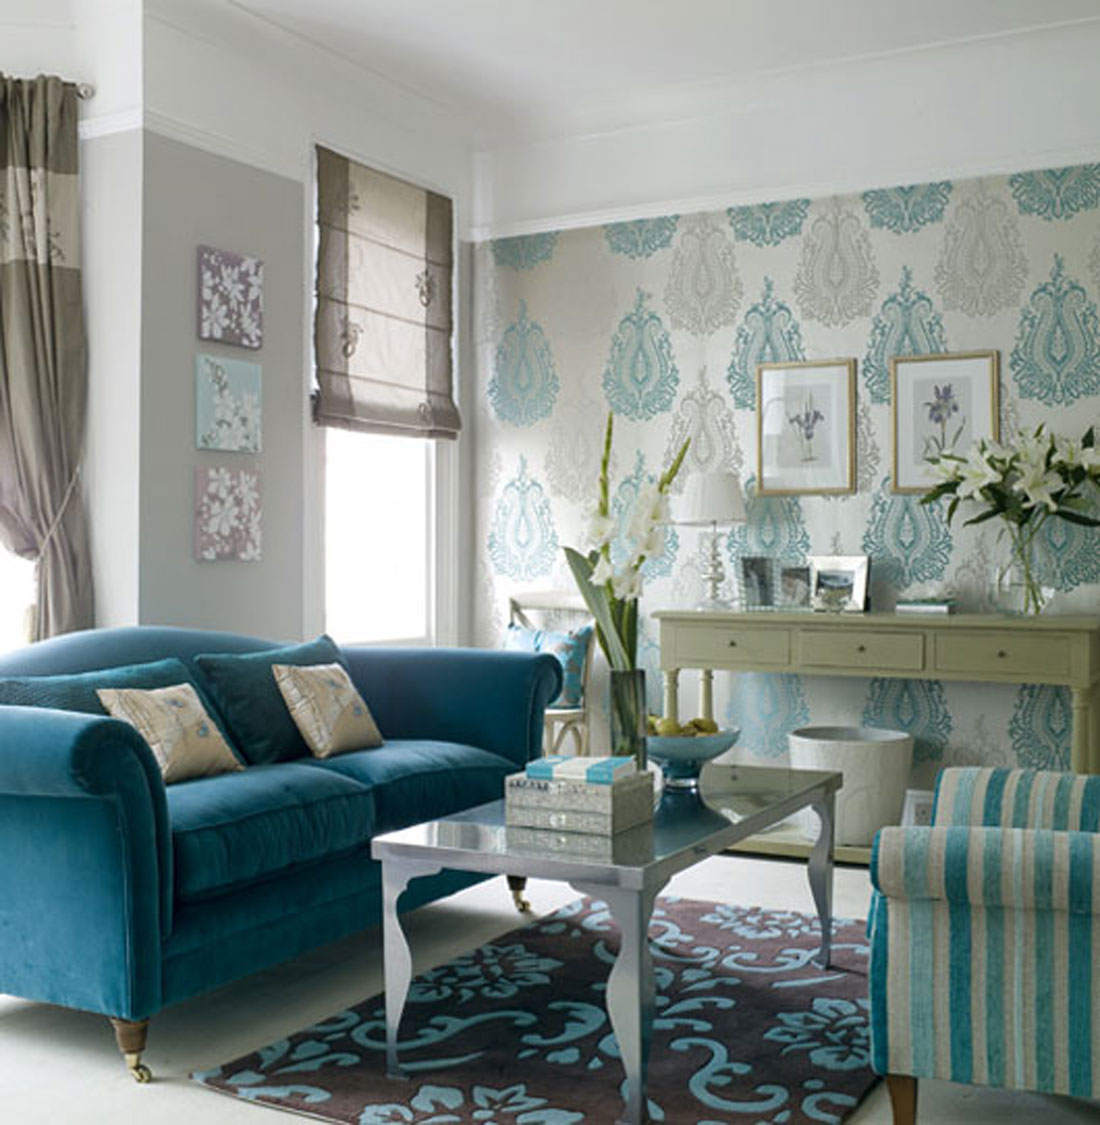 Aqua Living Room Decorating Ideas Gorgeous Lounge Wohnzimmer The Texture Of Teal And Turquoise A Bold And Beautiful